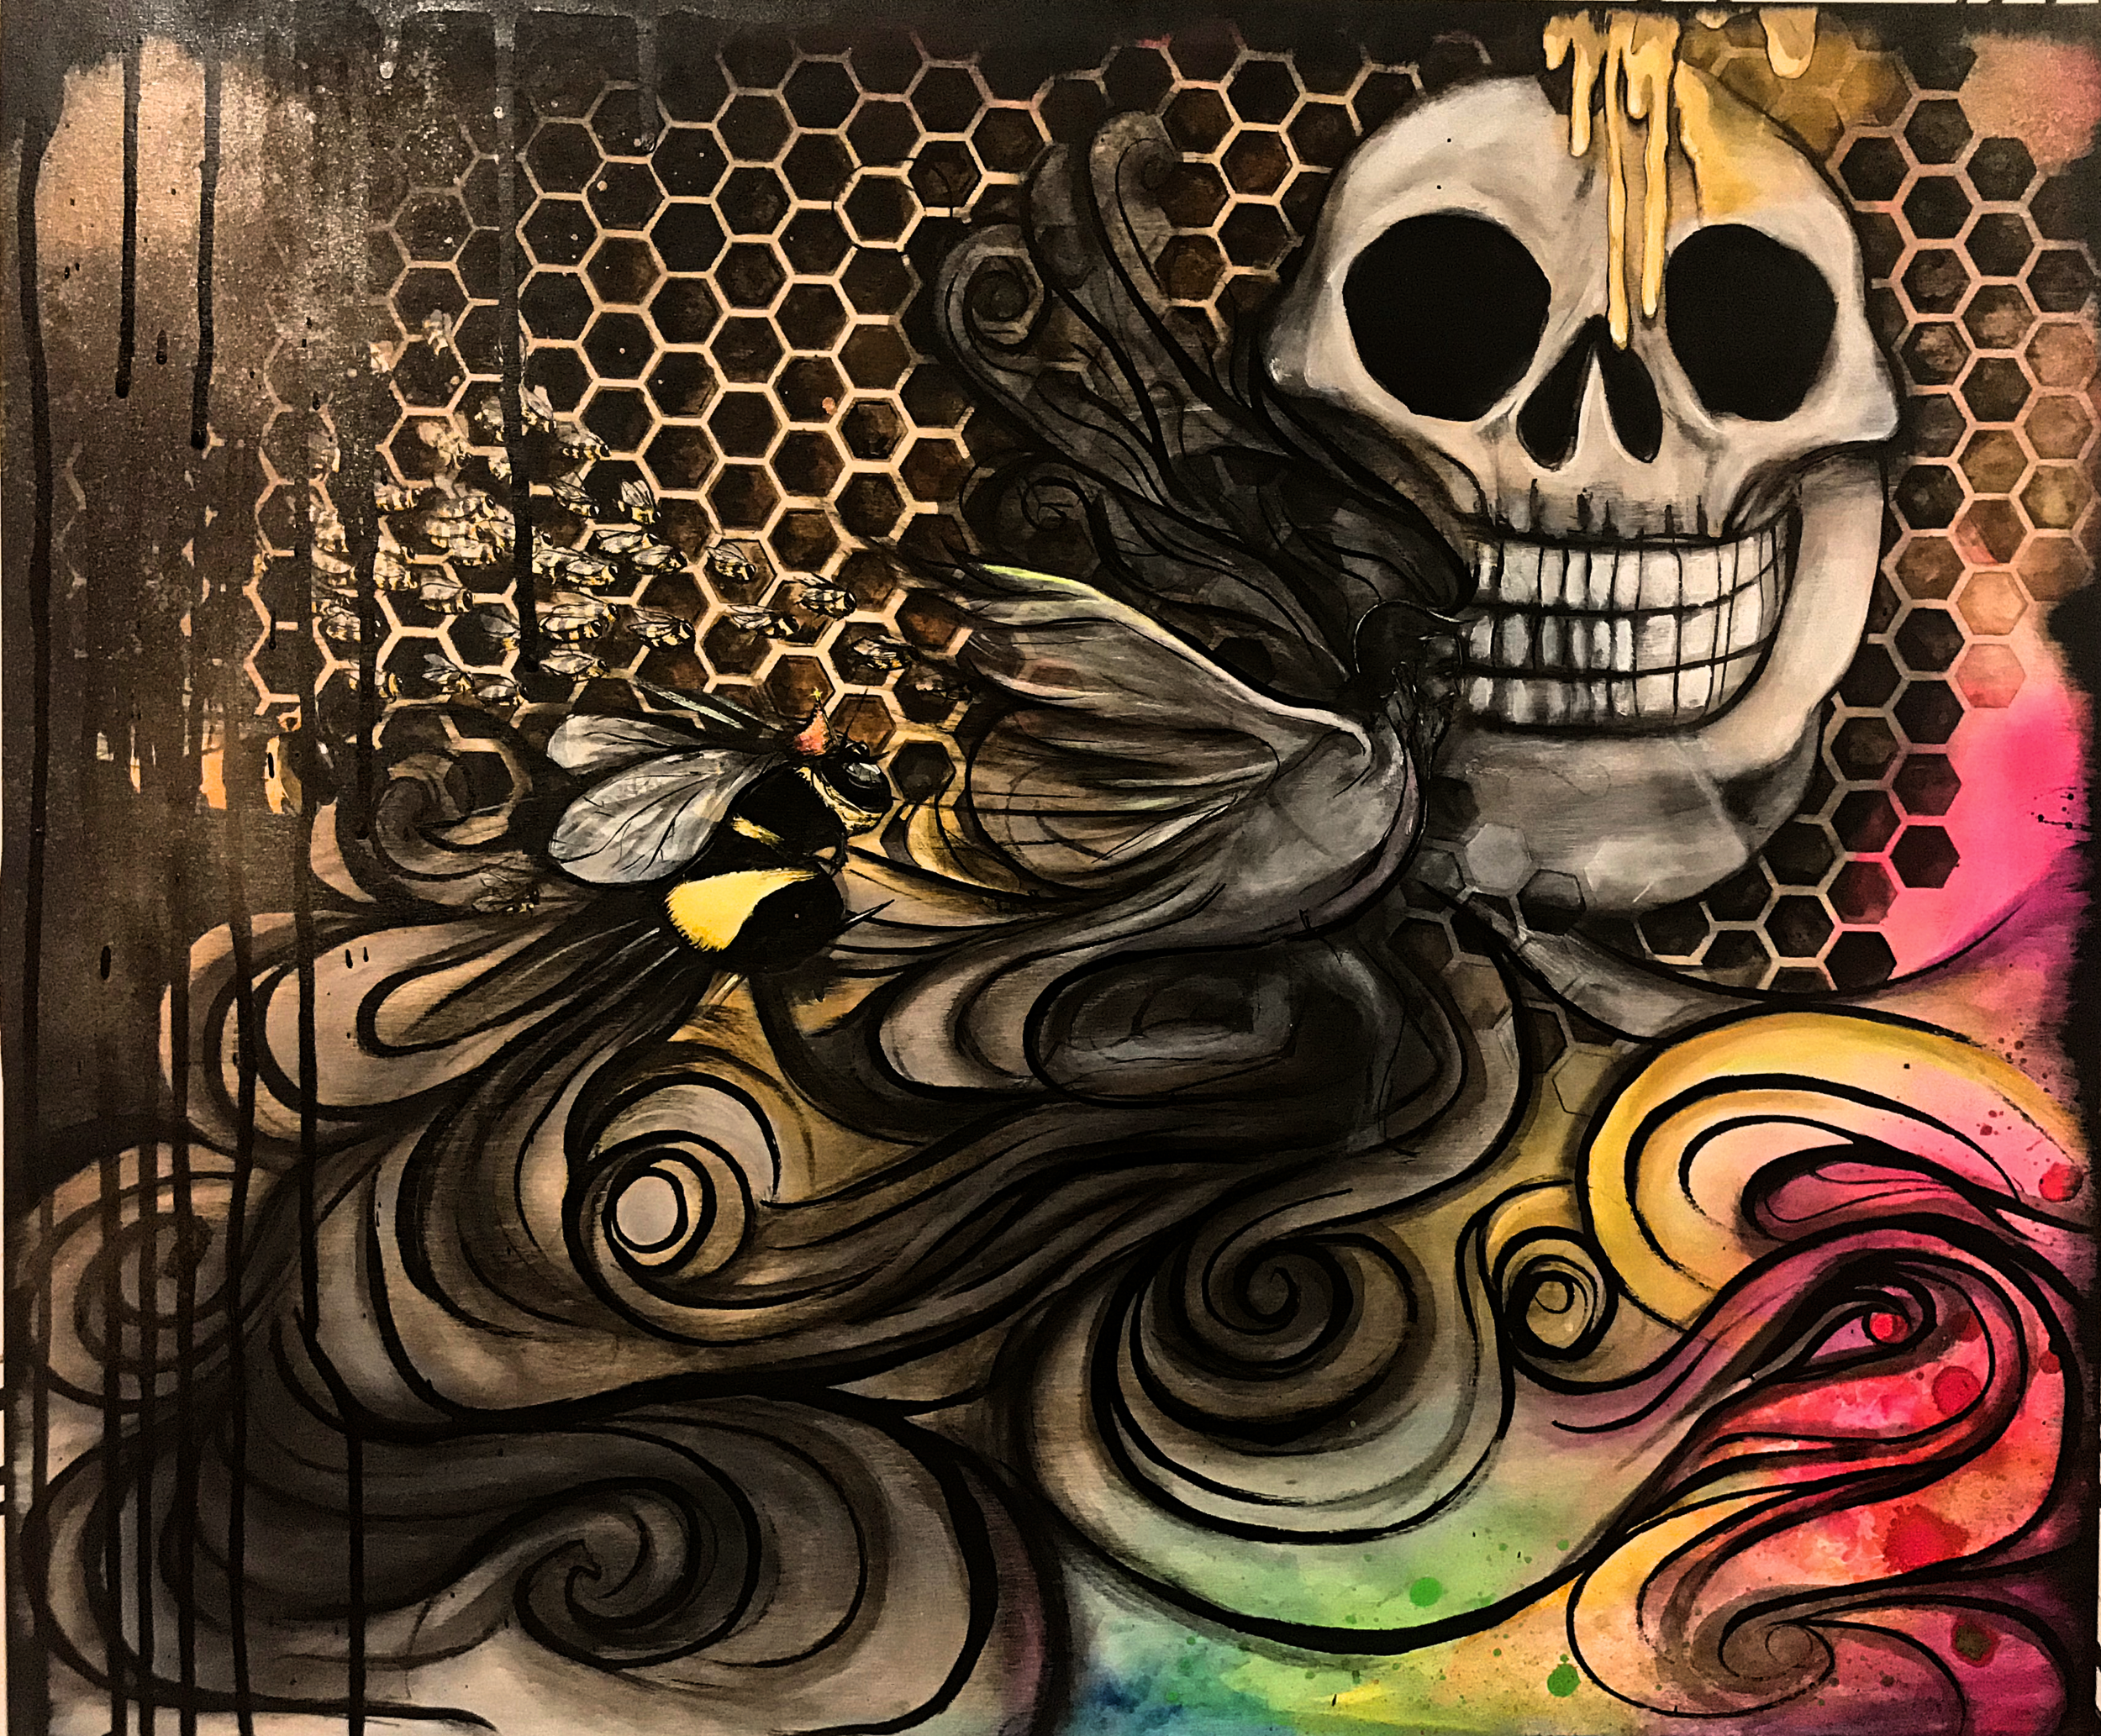 Artwork for collaborative saison between Calle Cimarrona of Costa Rica and KCBC of Brooklyn, NY